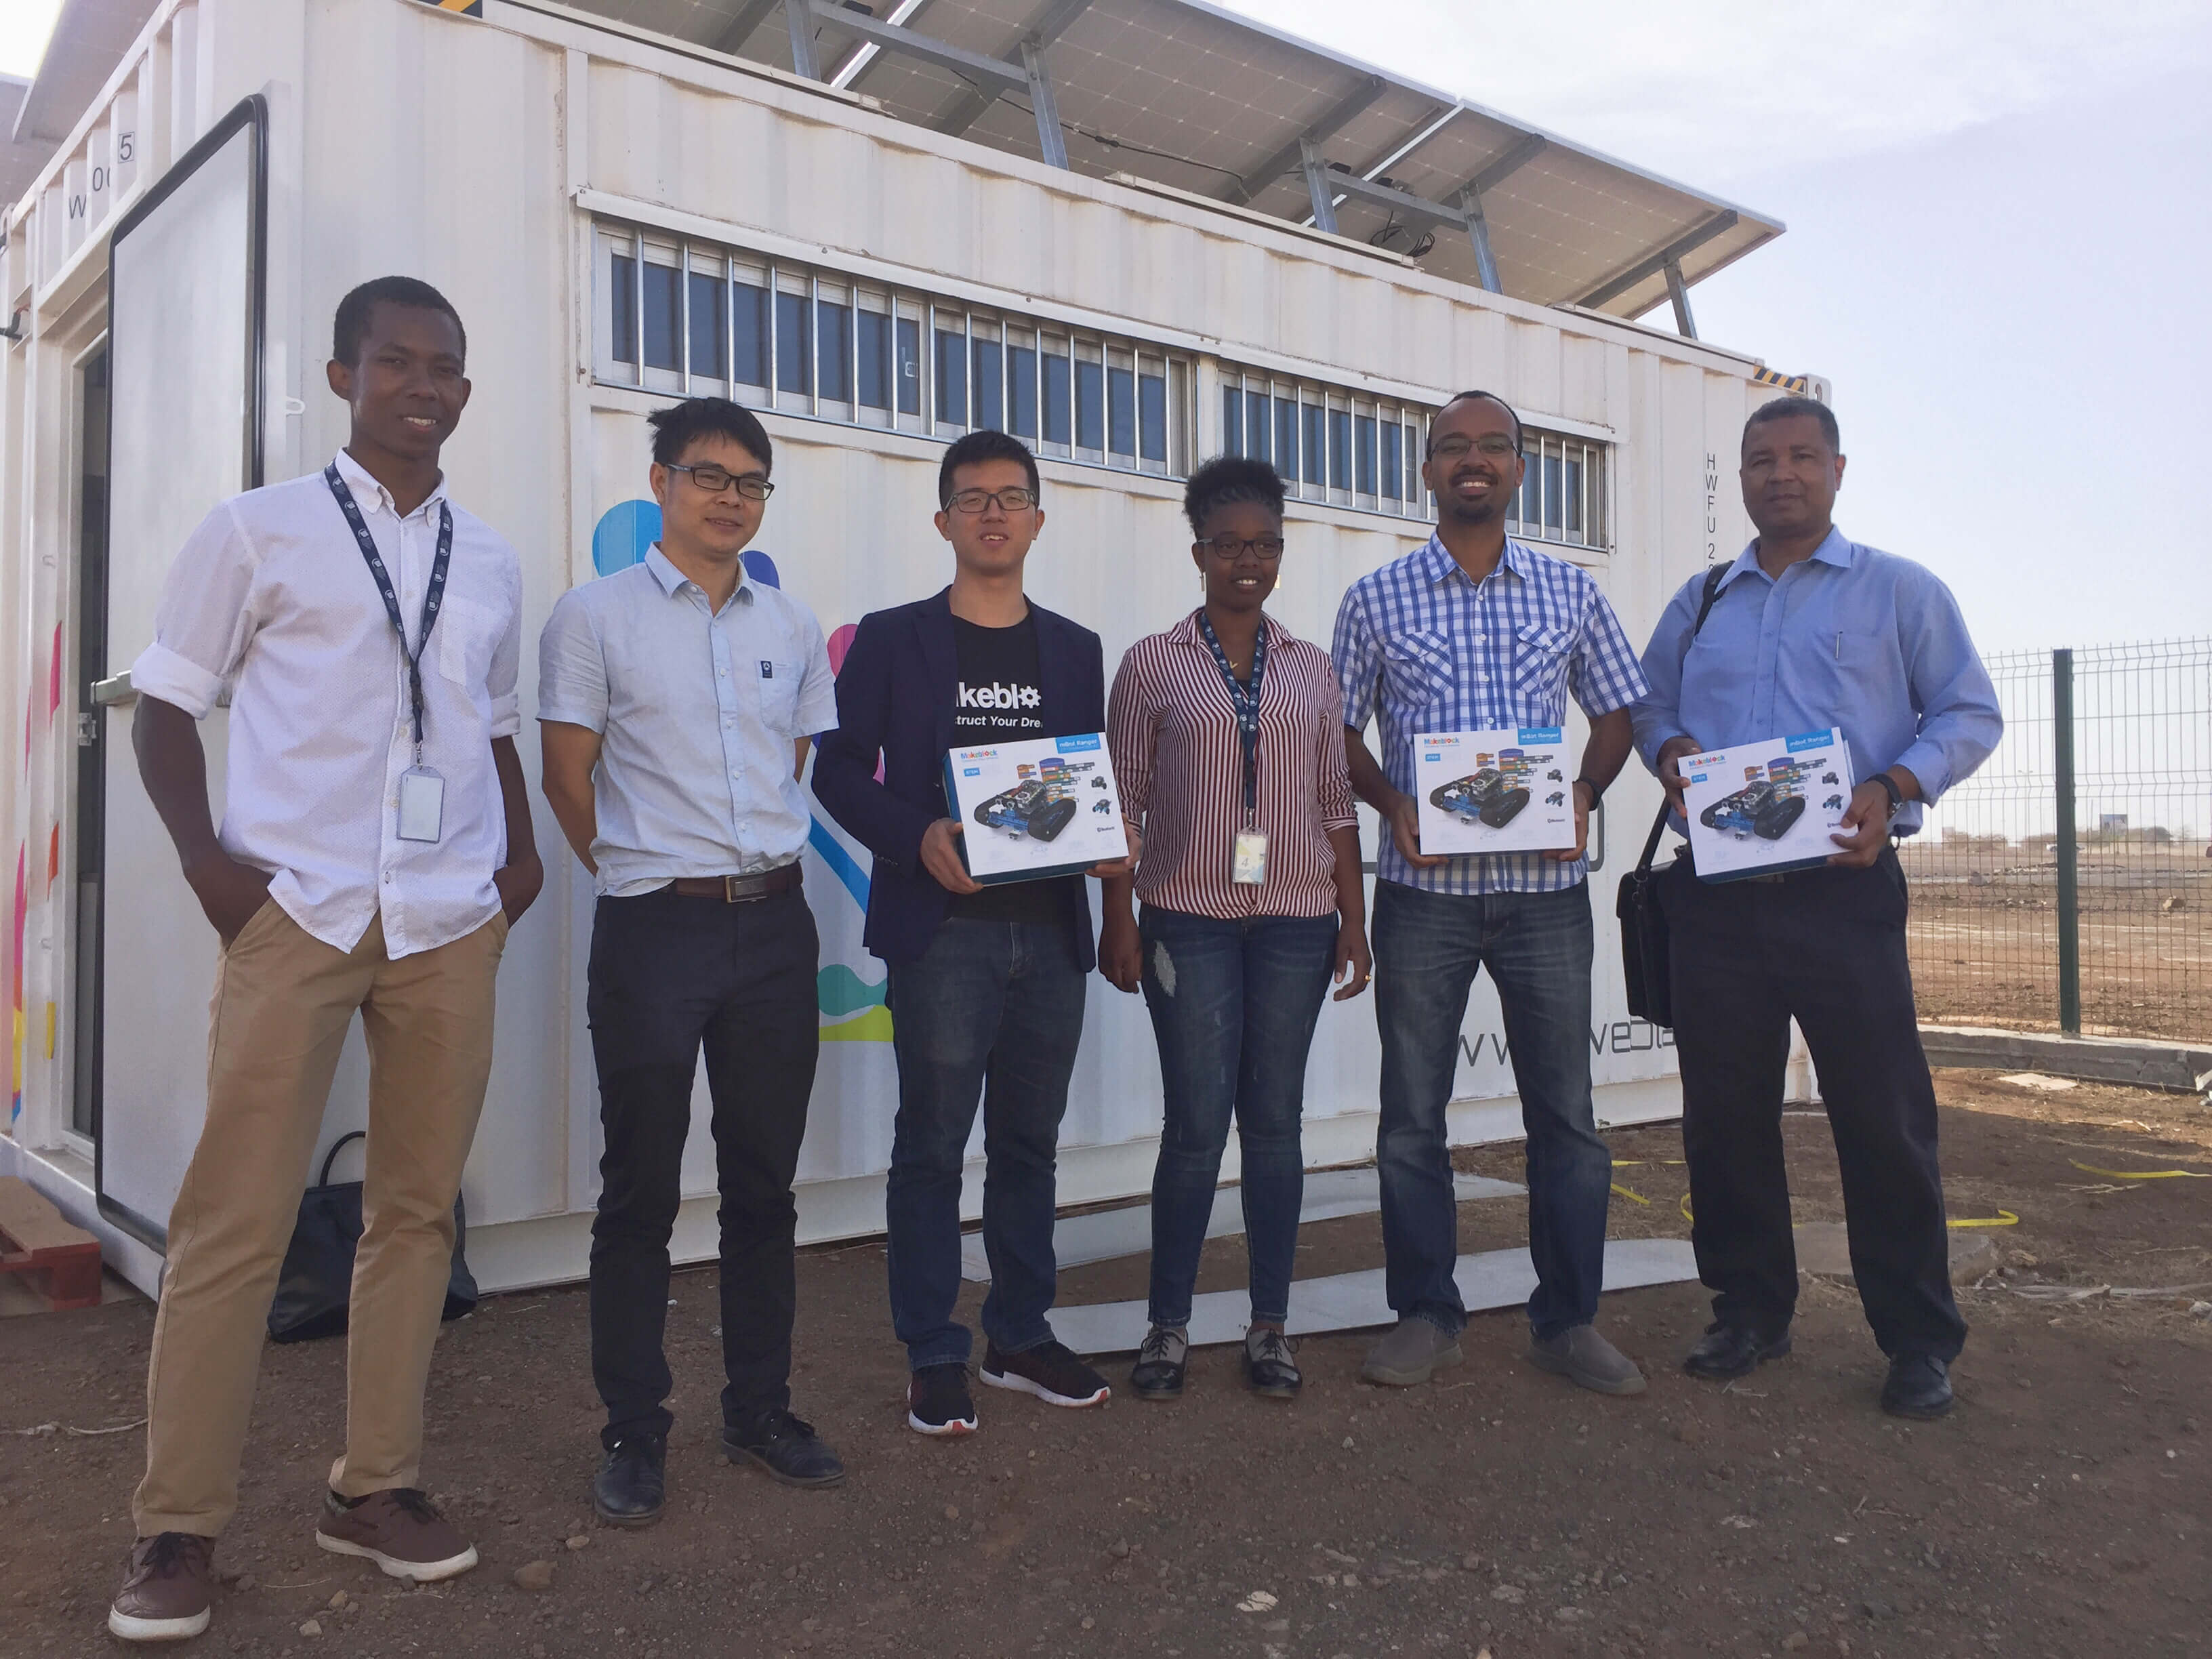 Makeblock Joins Forces with NOSI to Bridge STEAM Education Gap in Cape Verde, Africa